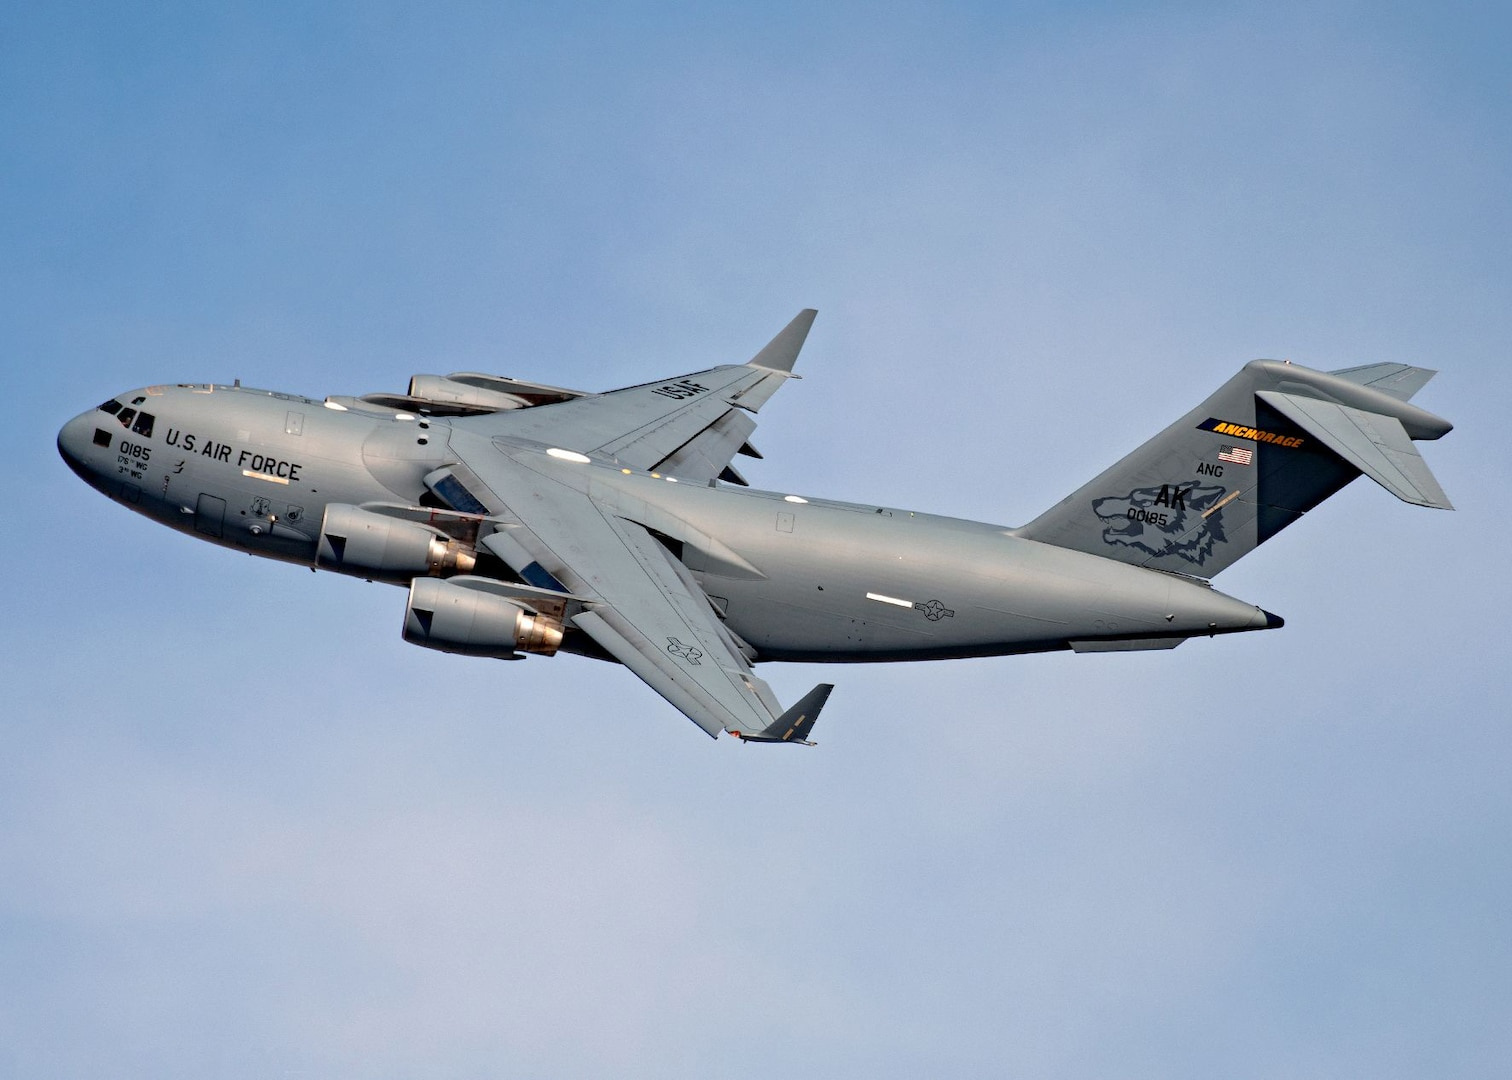 Firebirds training in southwestern US highlights C-17 capabilities